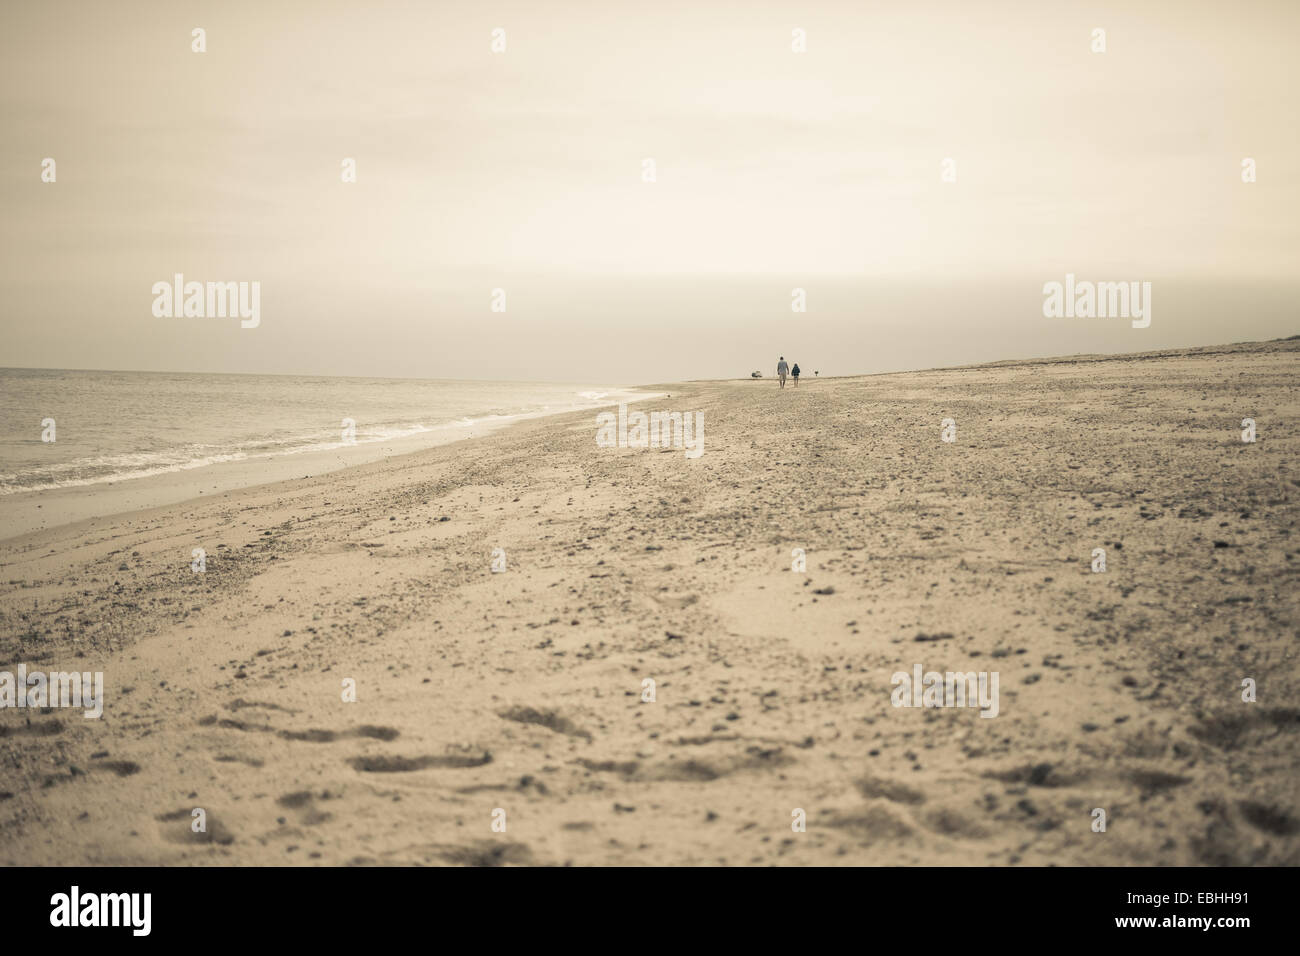 Distant view of two people strolling on beach, Truro, Massachusetts, Cape Cod, USA - Stock Image